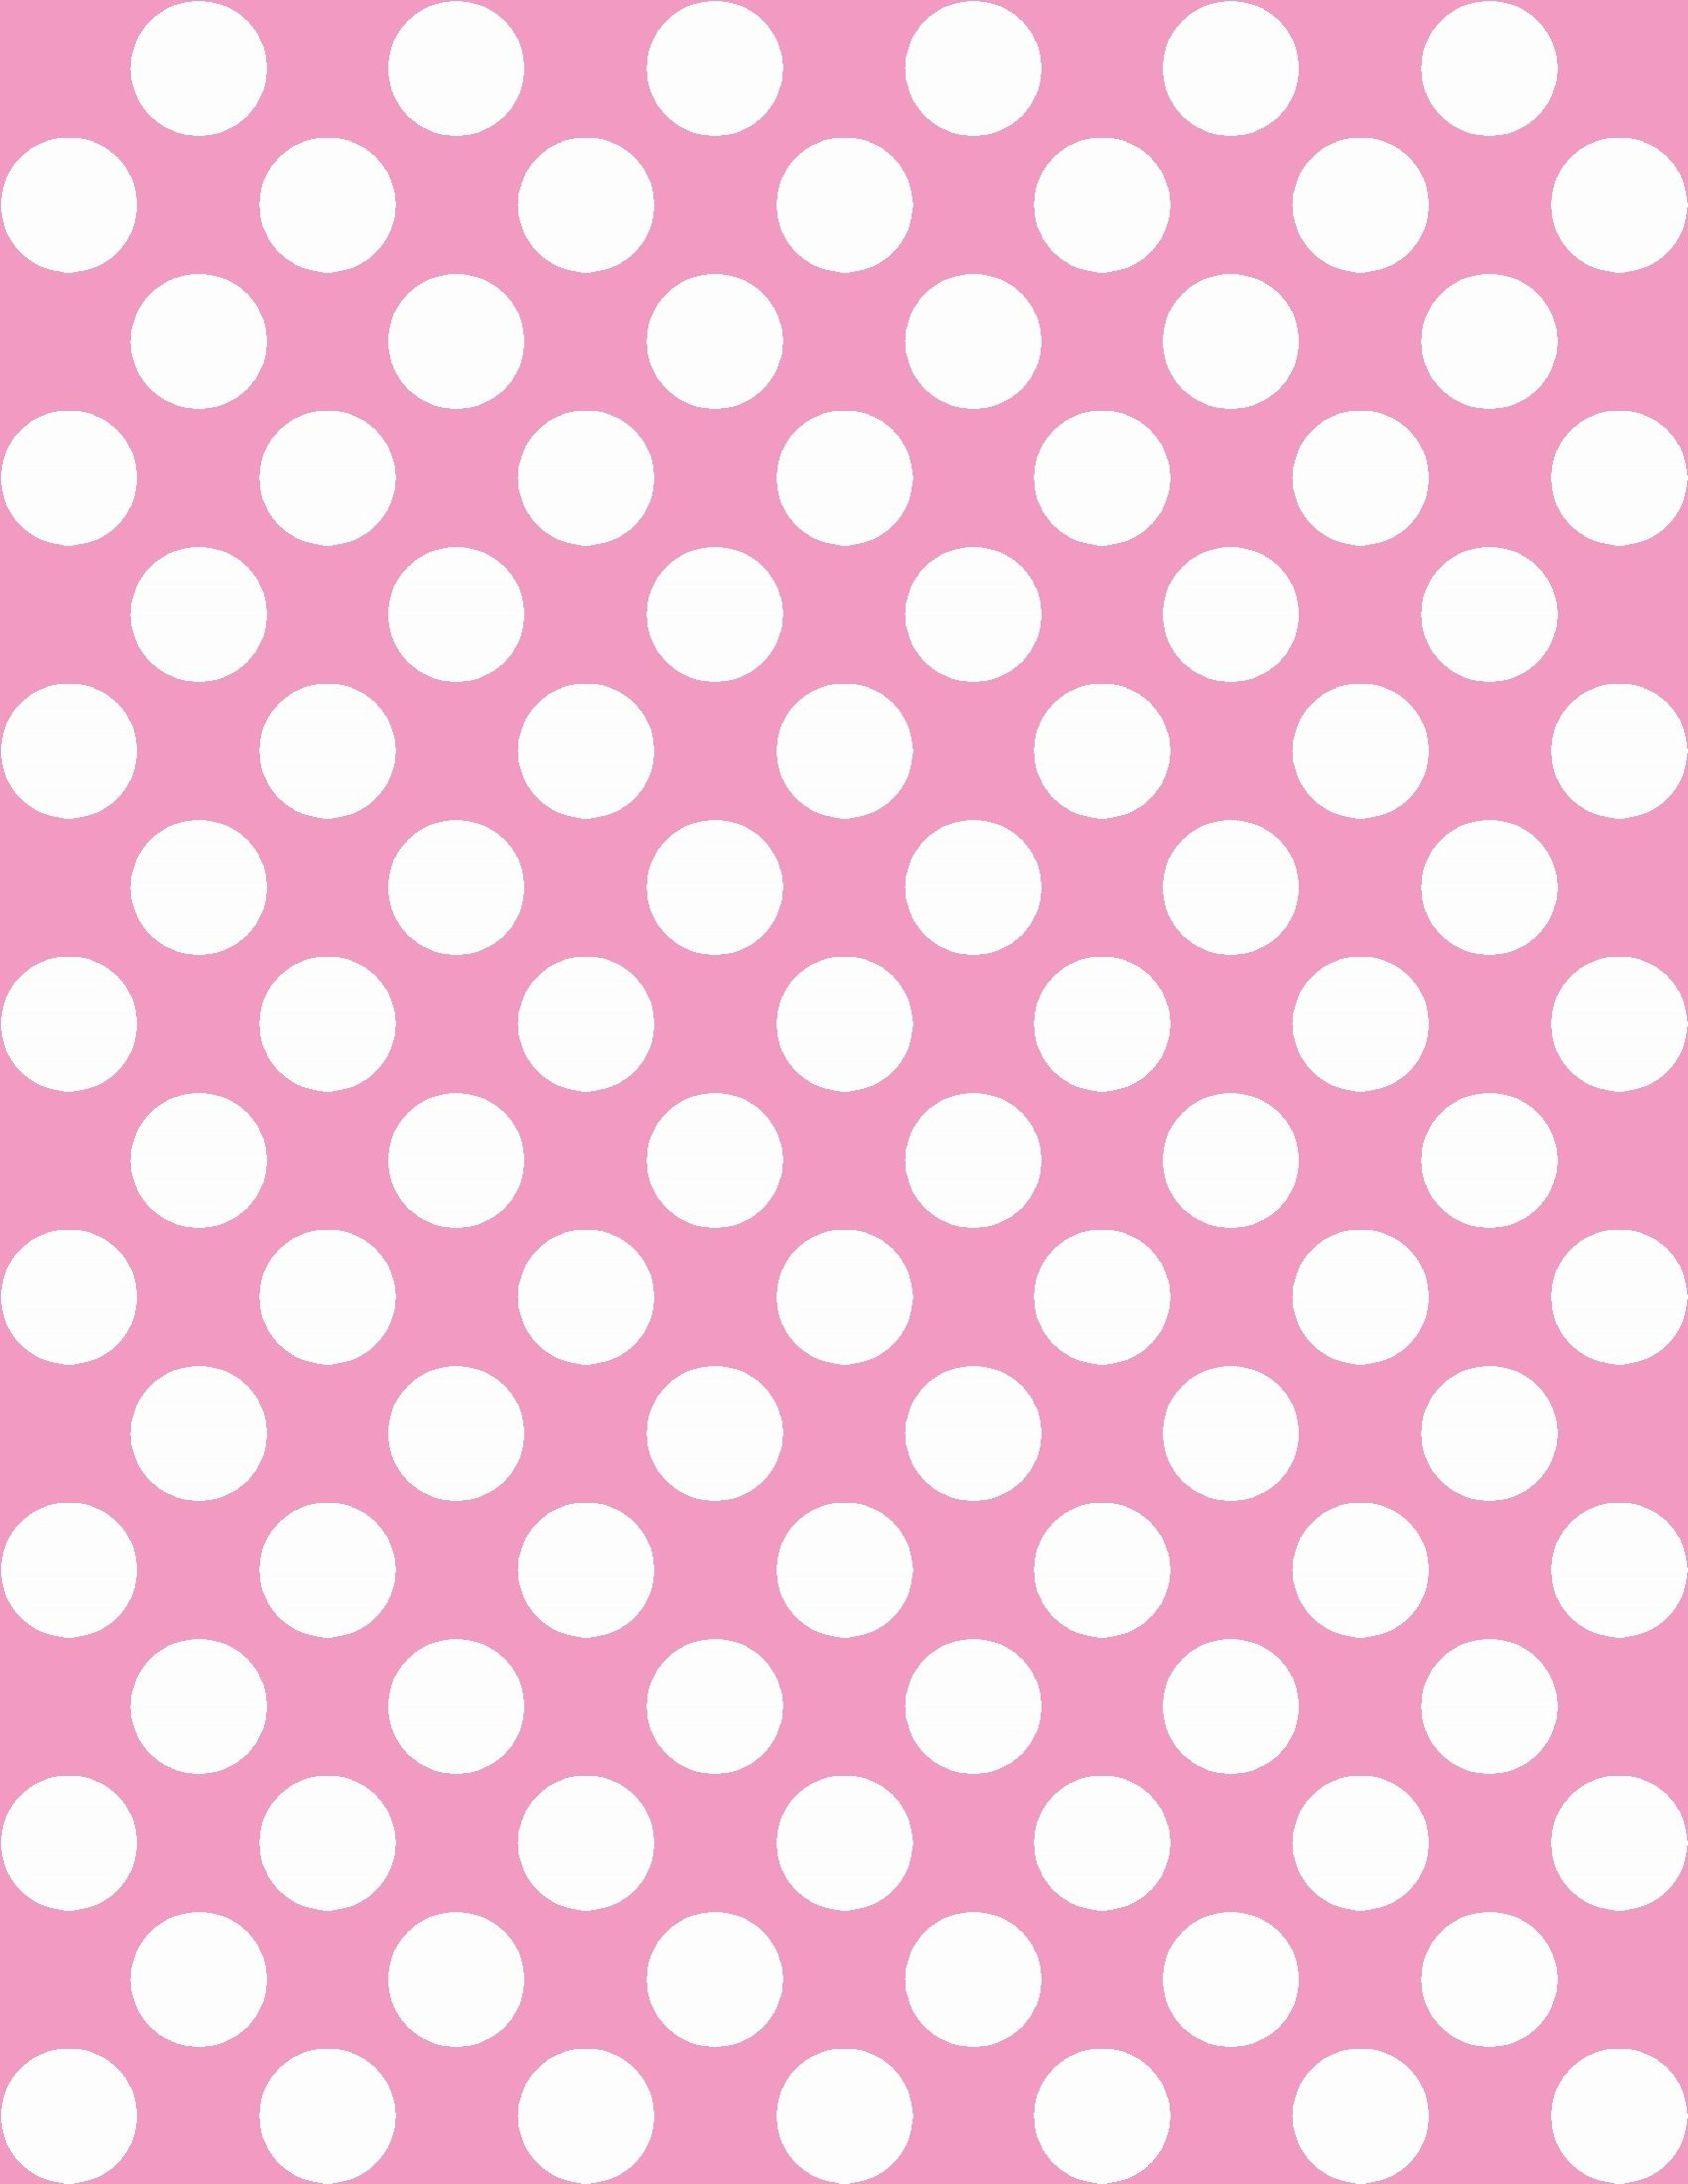 Free Polka Dot Background In Any Color   Instant Download - Free Printable Pink Polka Dot Paper